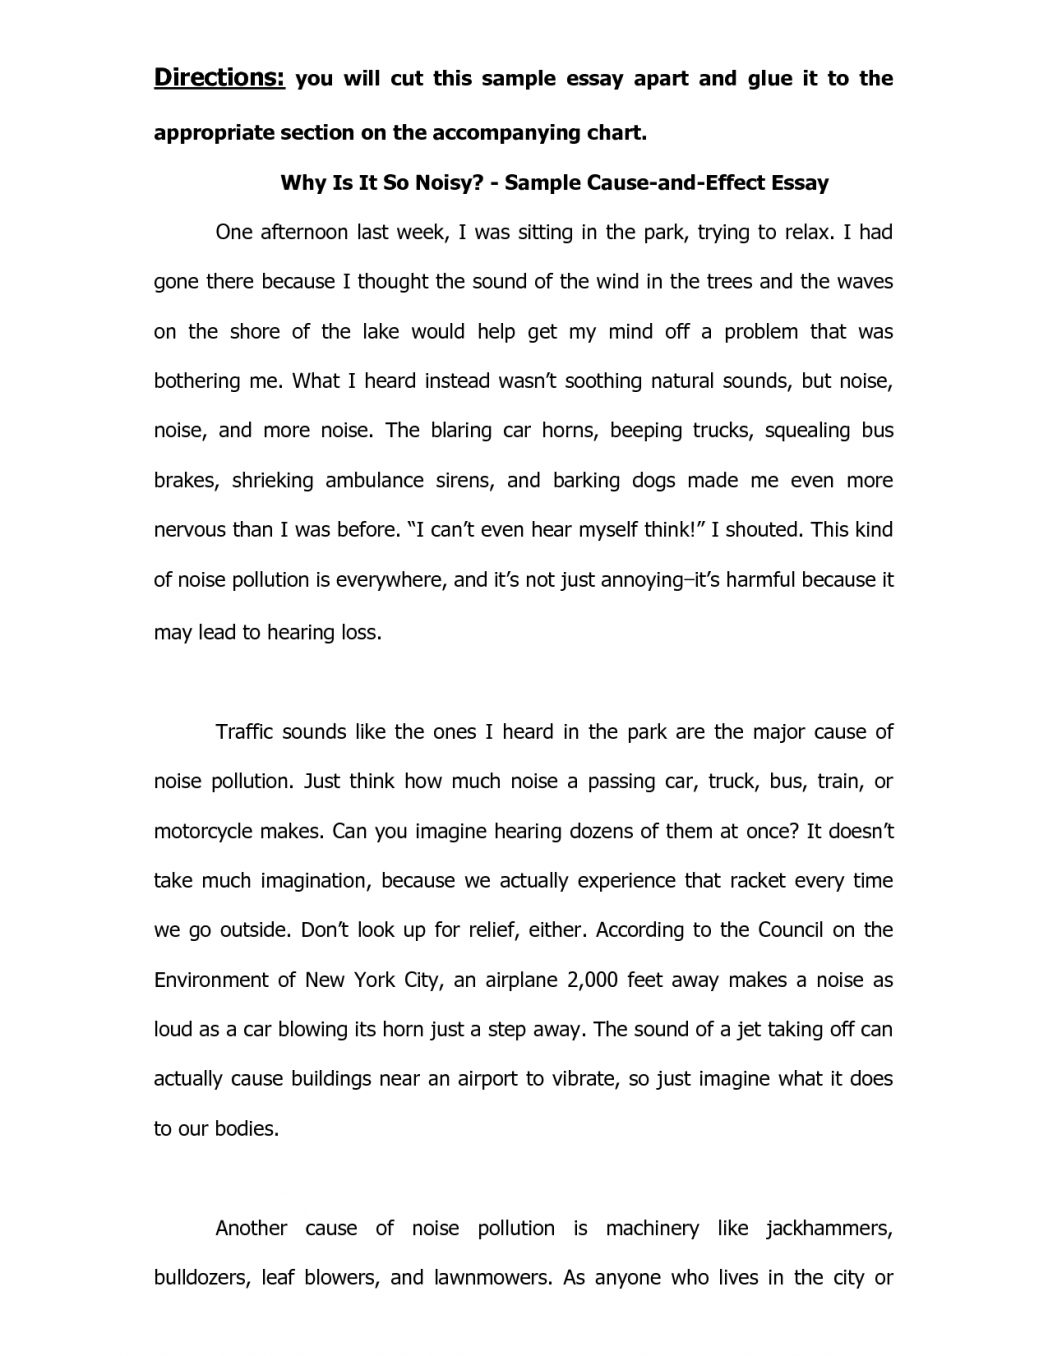 011 Free Cv Template Word014 Cause And Effect Divorce Essay Causes Effects Of Cover L Example Sample Impressive Questions On Sleep Deprivation Bullying Full